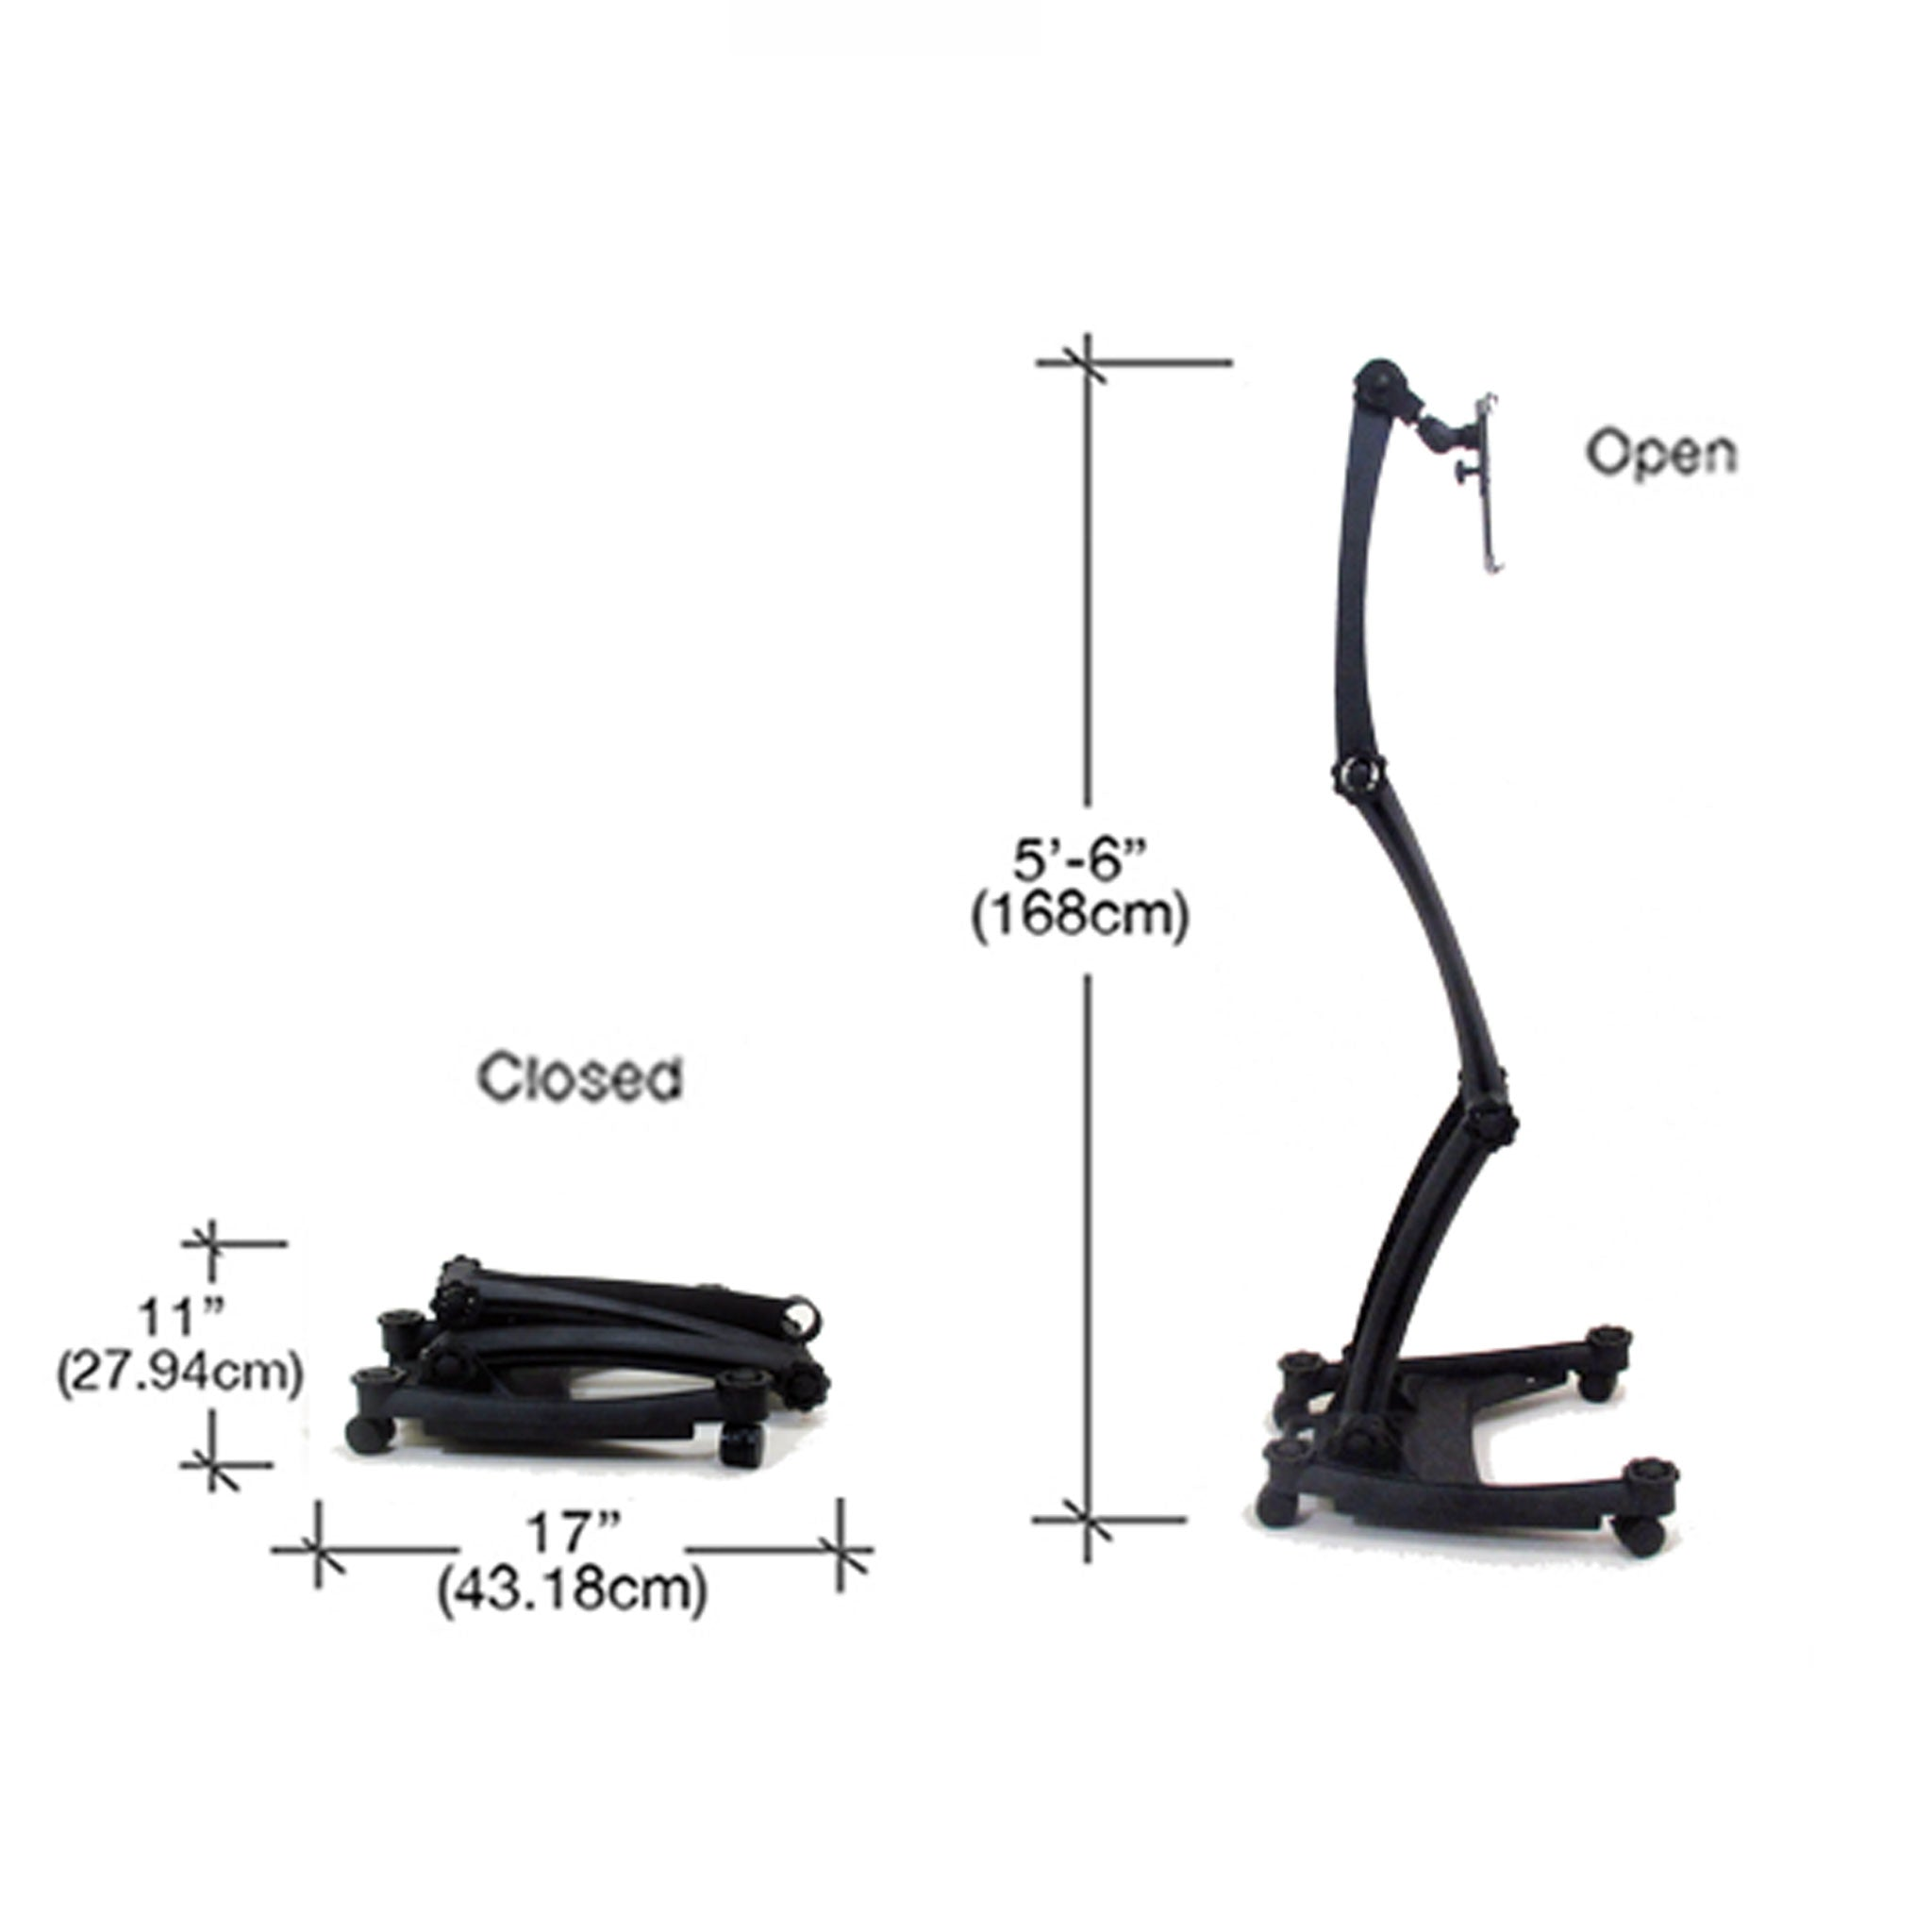 Dimensions of the ZStand AllStar in its closed and full extension positions.